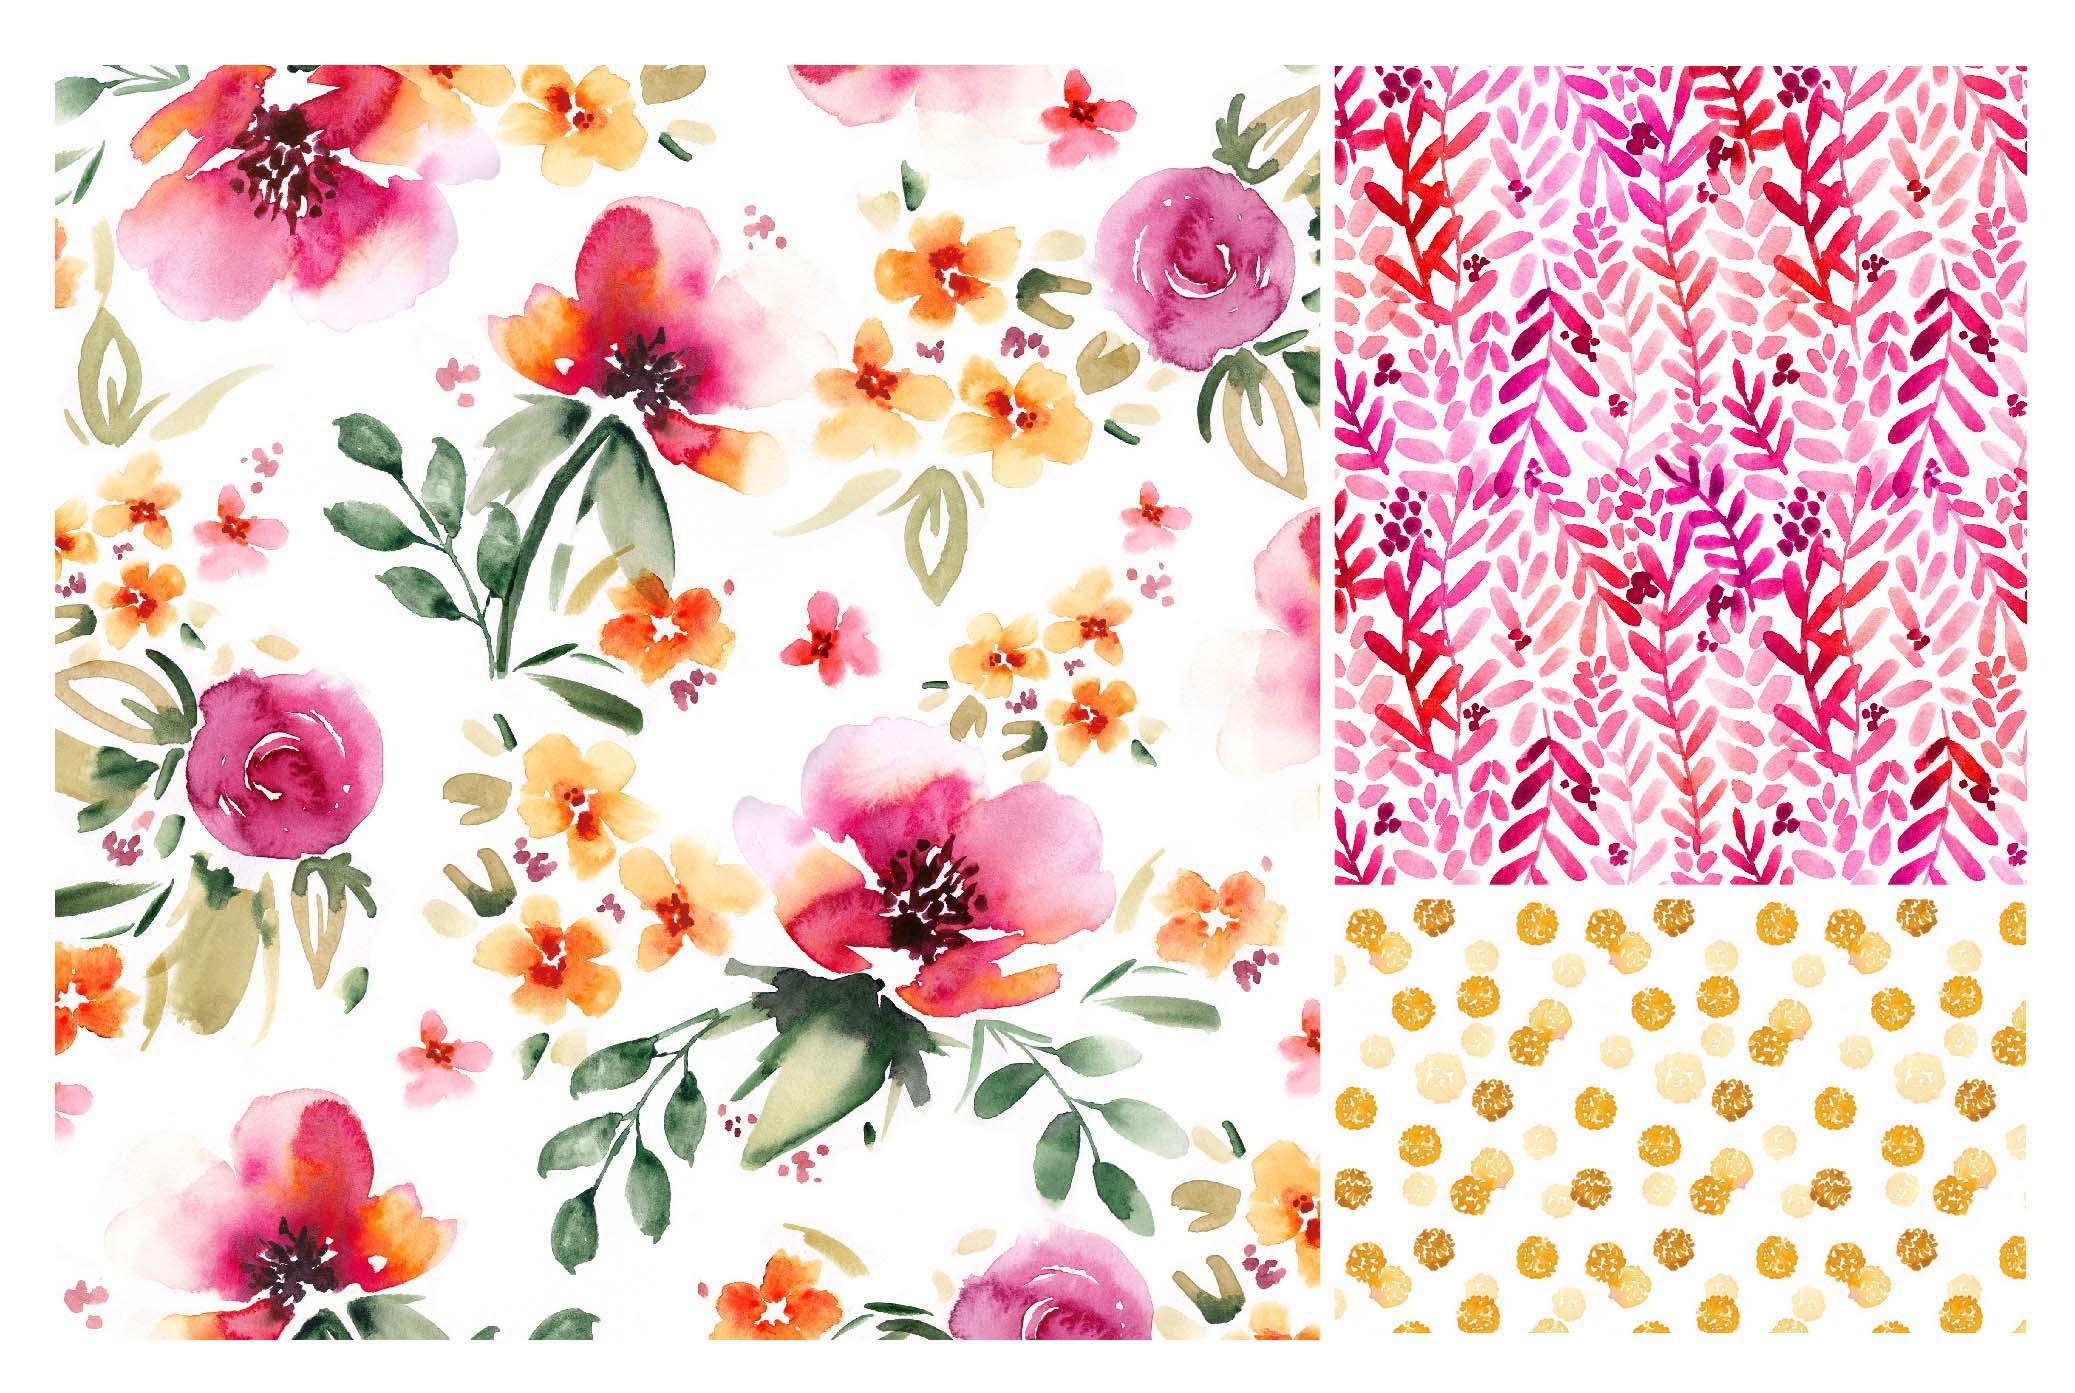 Sara Berrenson Illustration  flower patterns